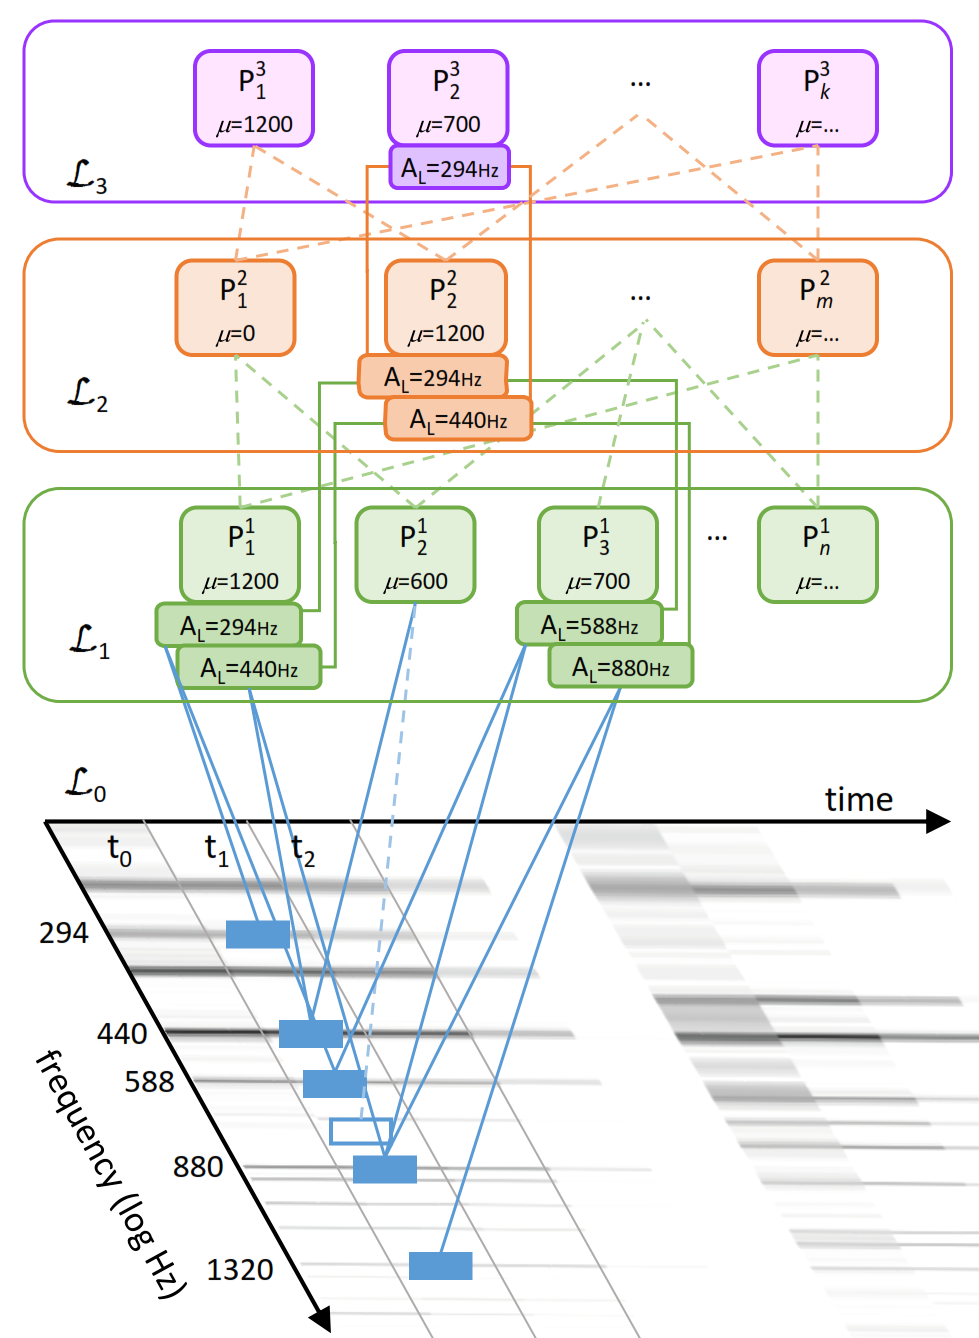 Compositional Hierarchical Model applied to spectral domain